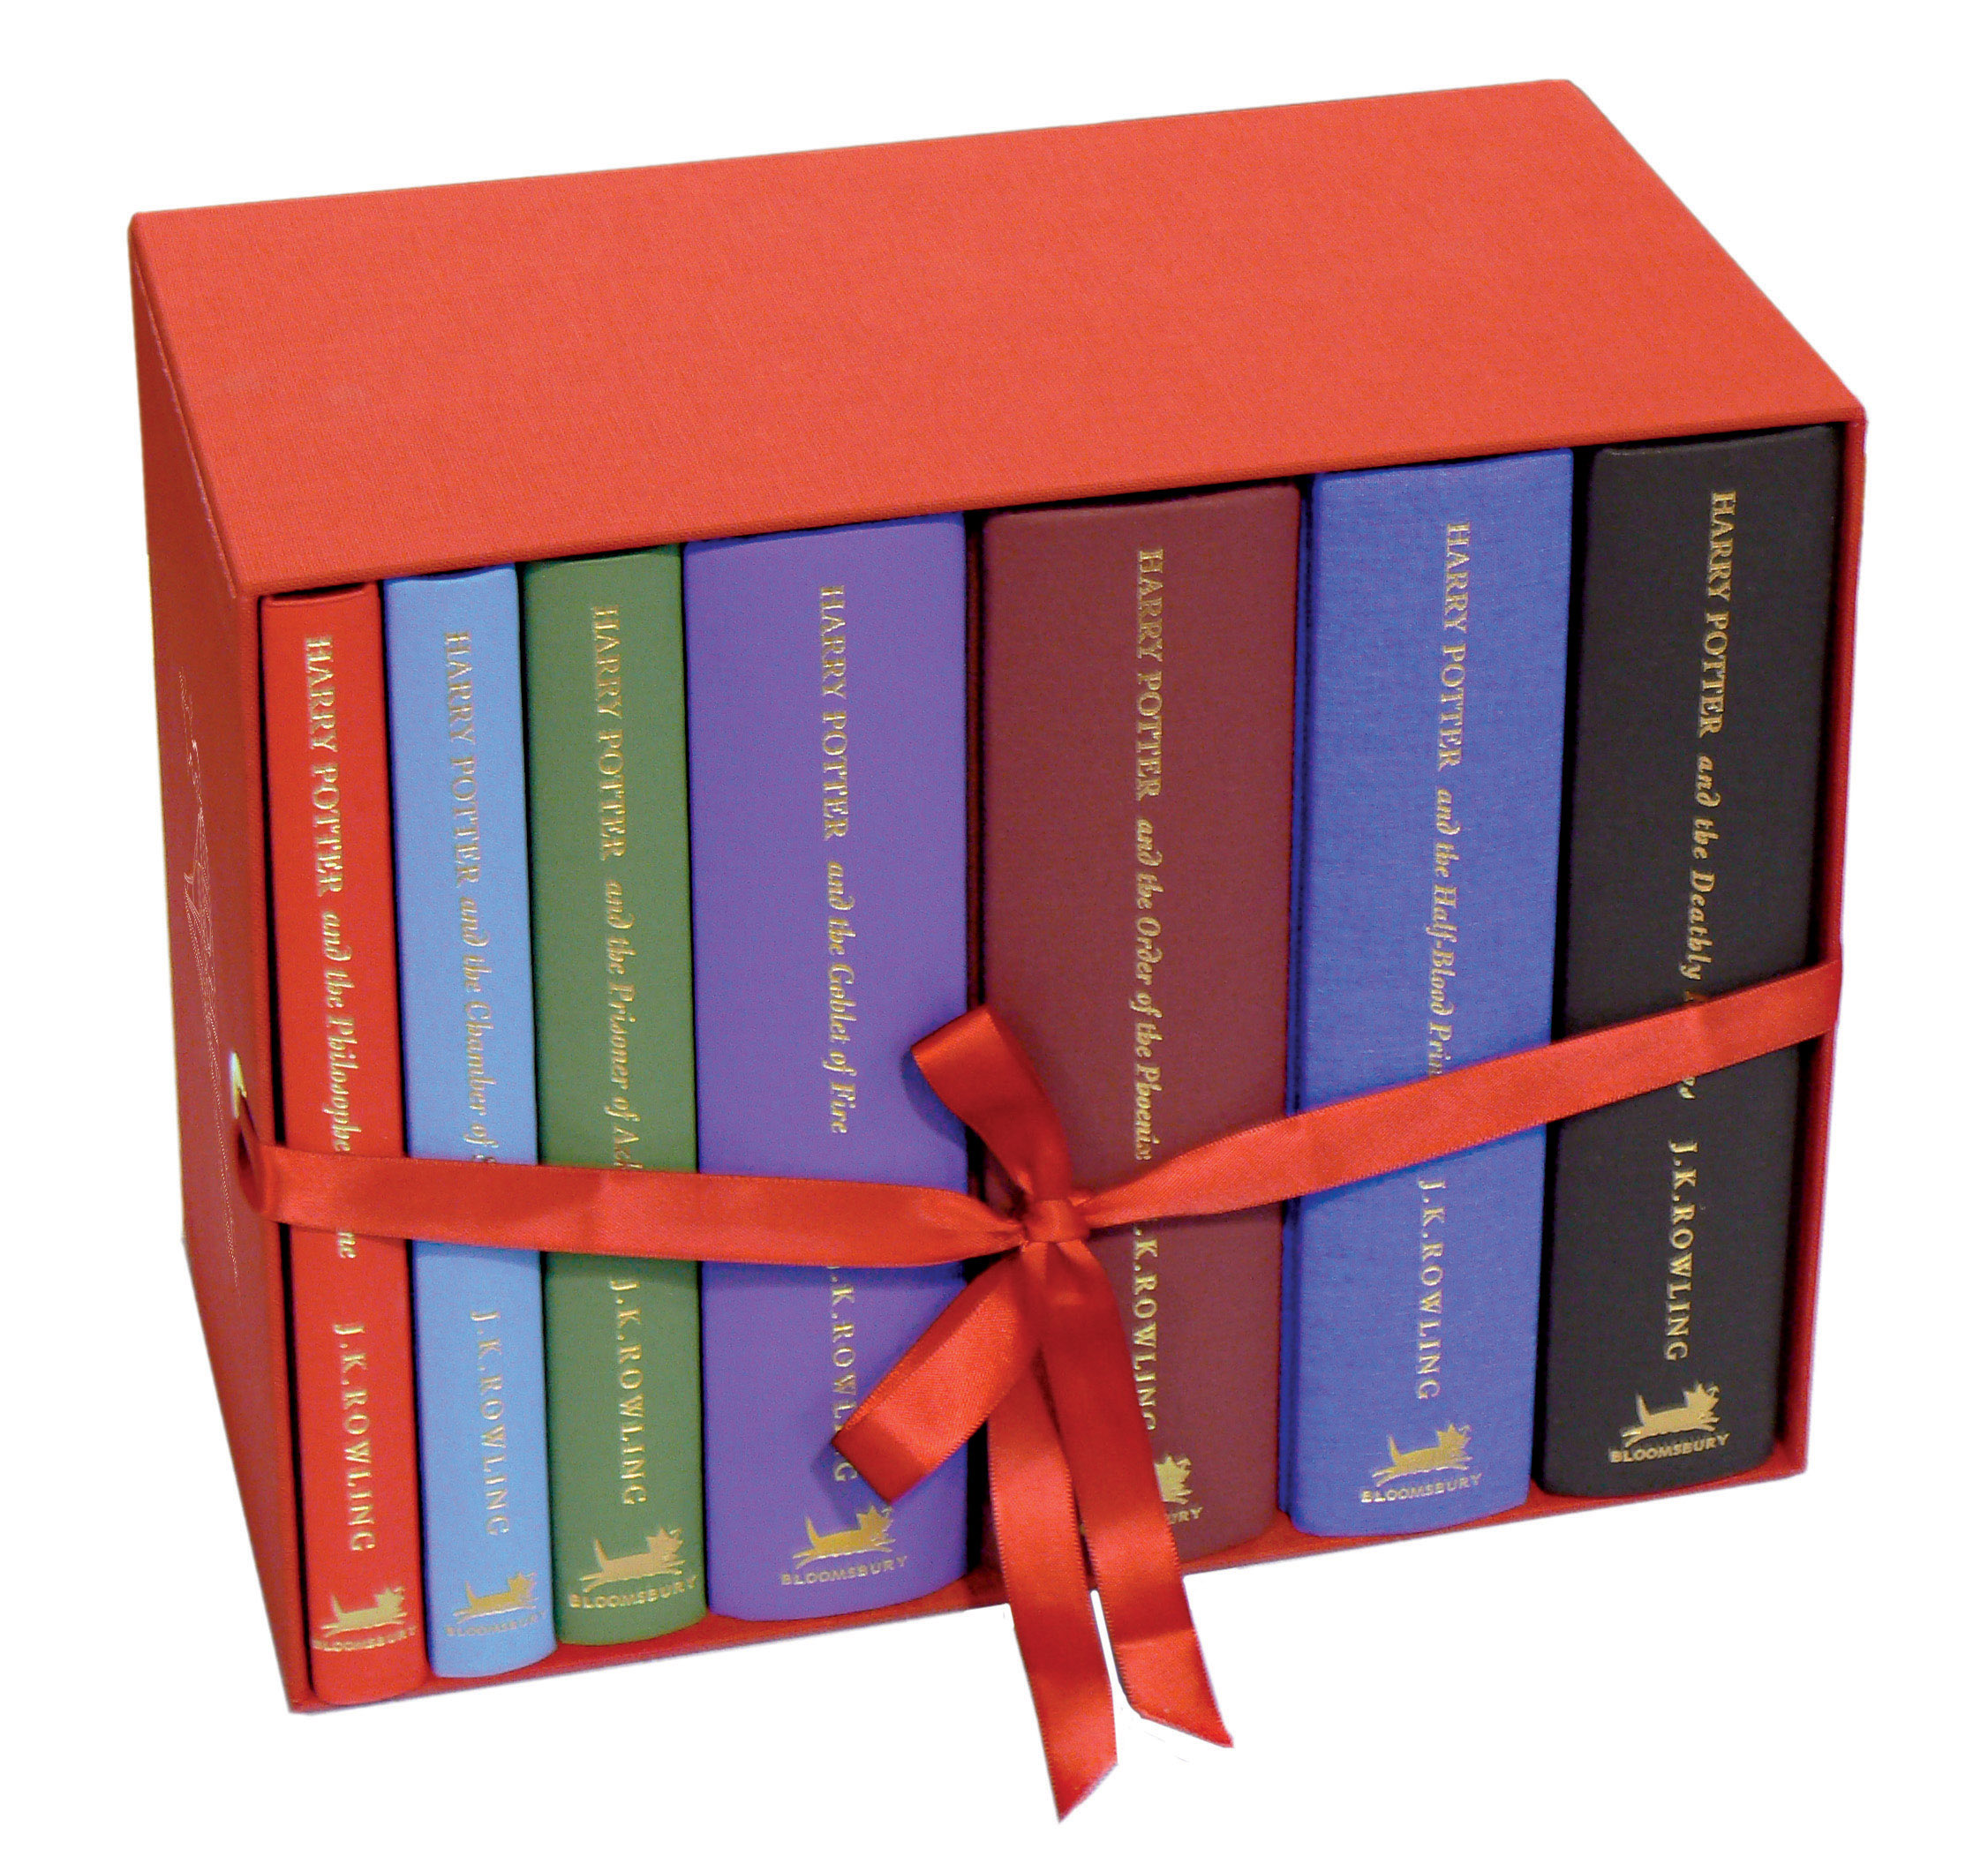 Harry Potter Special Edition Boxed Set x 7 by J.K. Rowling, ISBN: 9780747593683